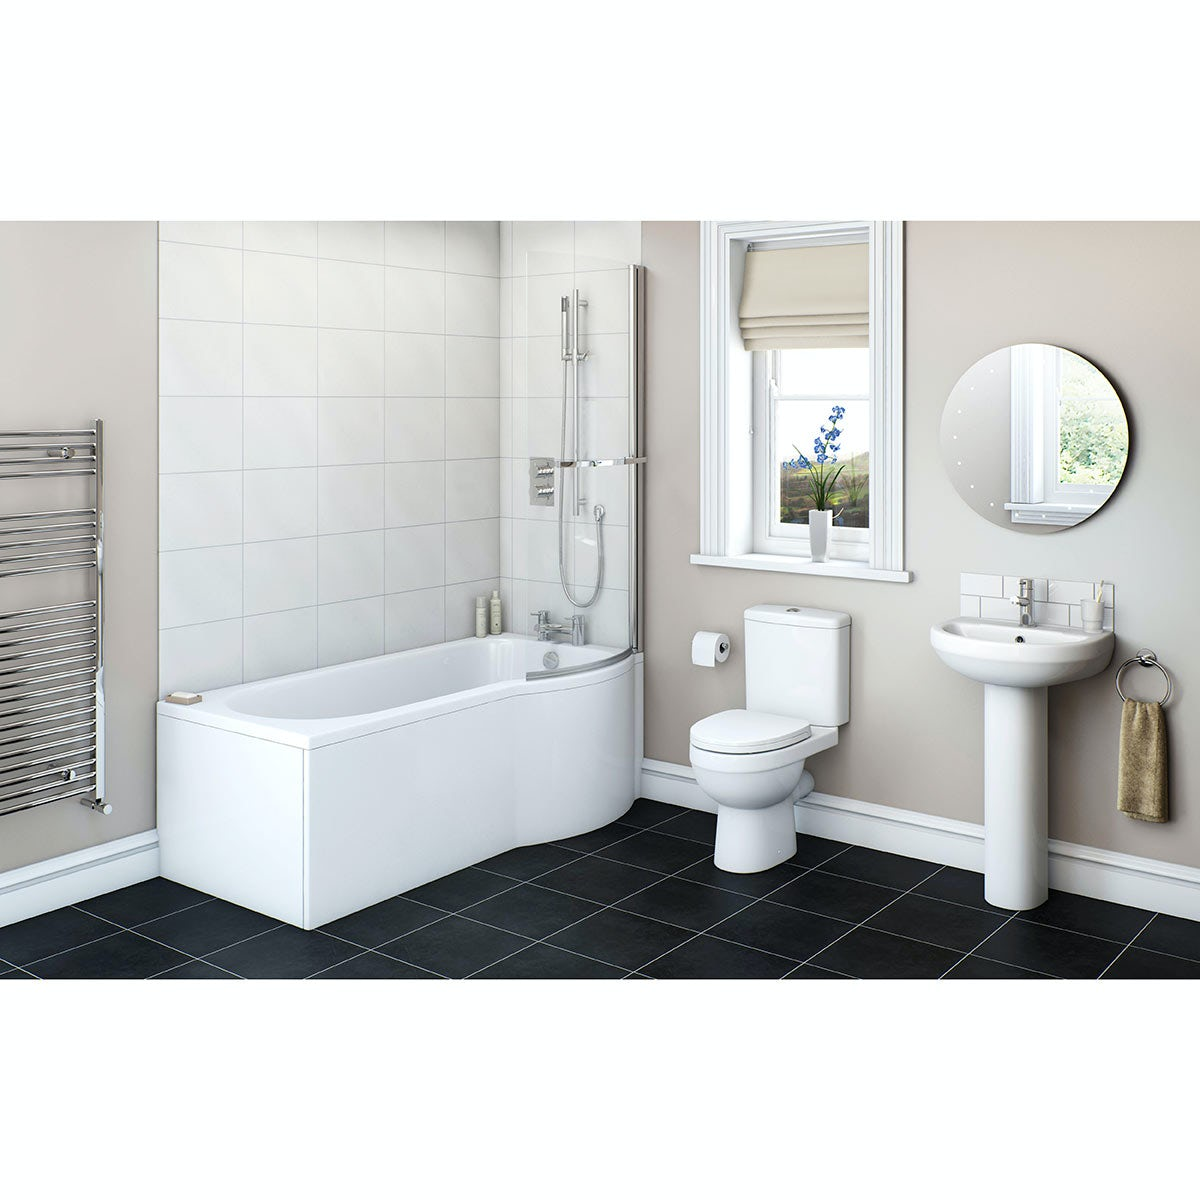 Bathroom suites with shower enclosures - Free Delivery Eden Bathroom Suite With Right Handed P Shaped Shower Bath 1675 X 850